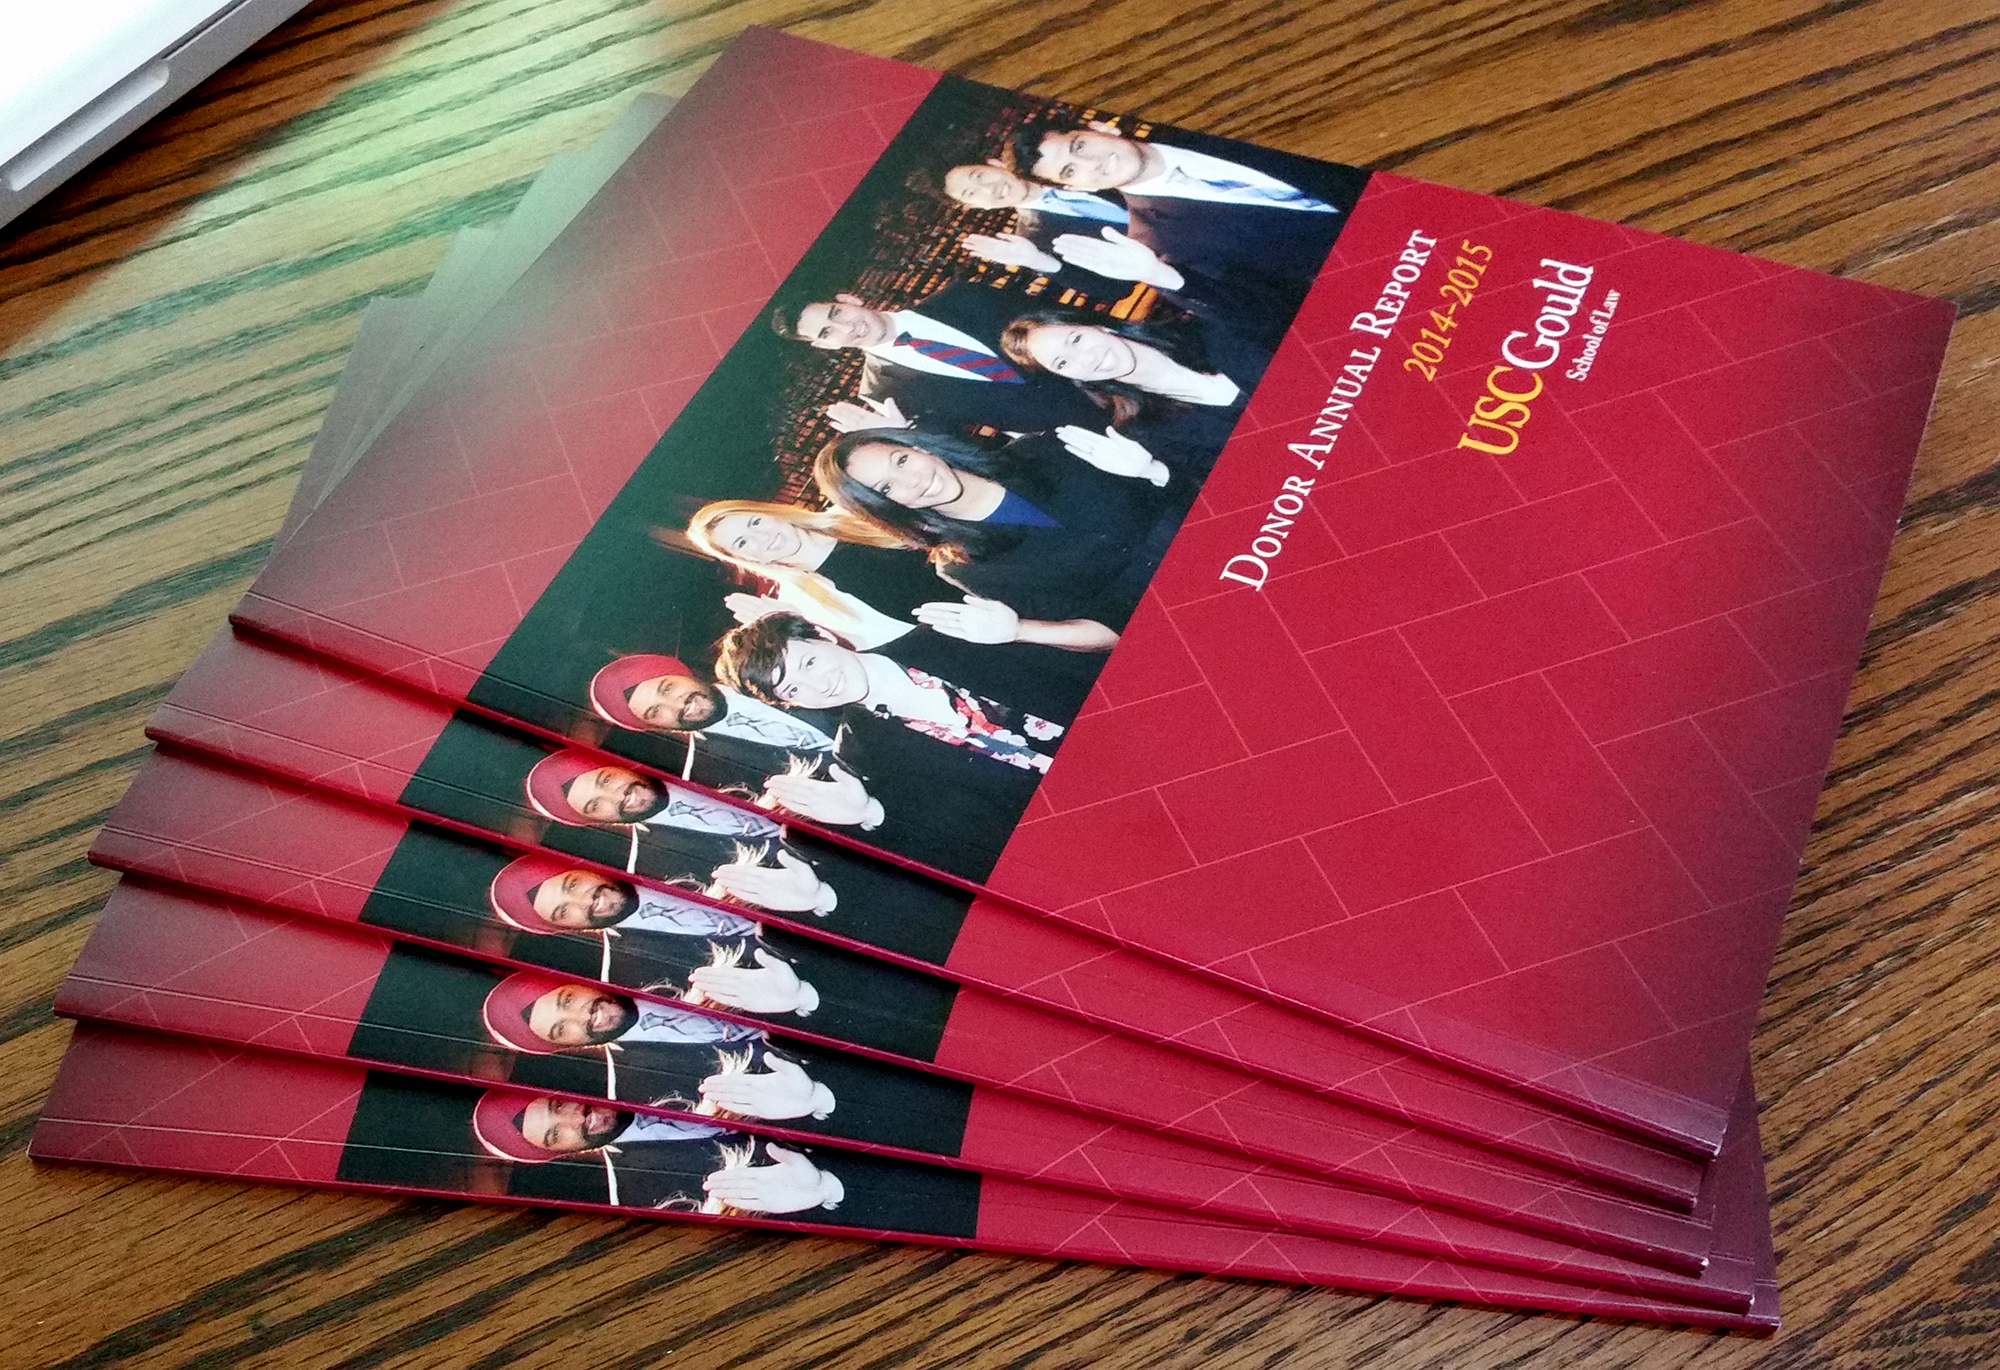 usc-gould-donor-book-2015